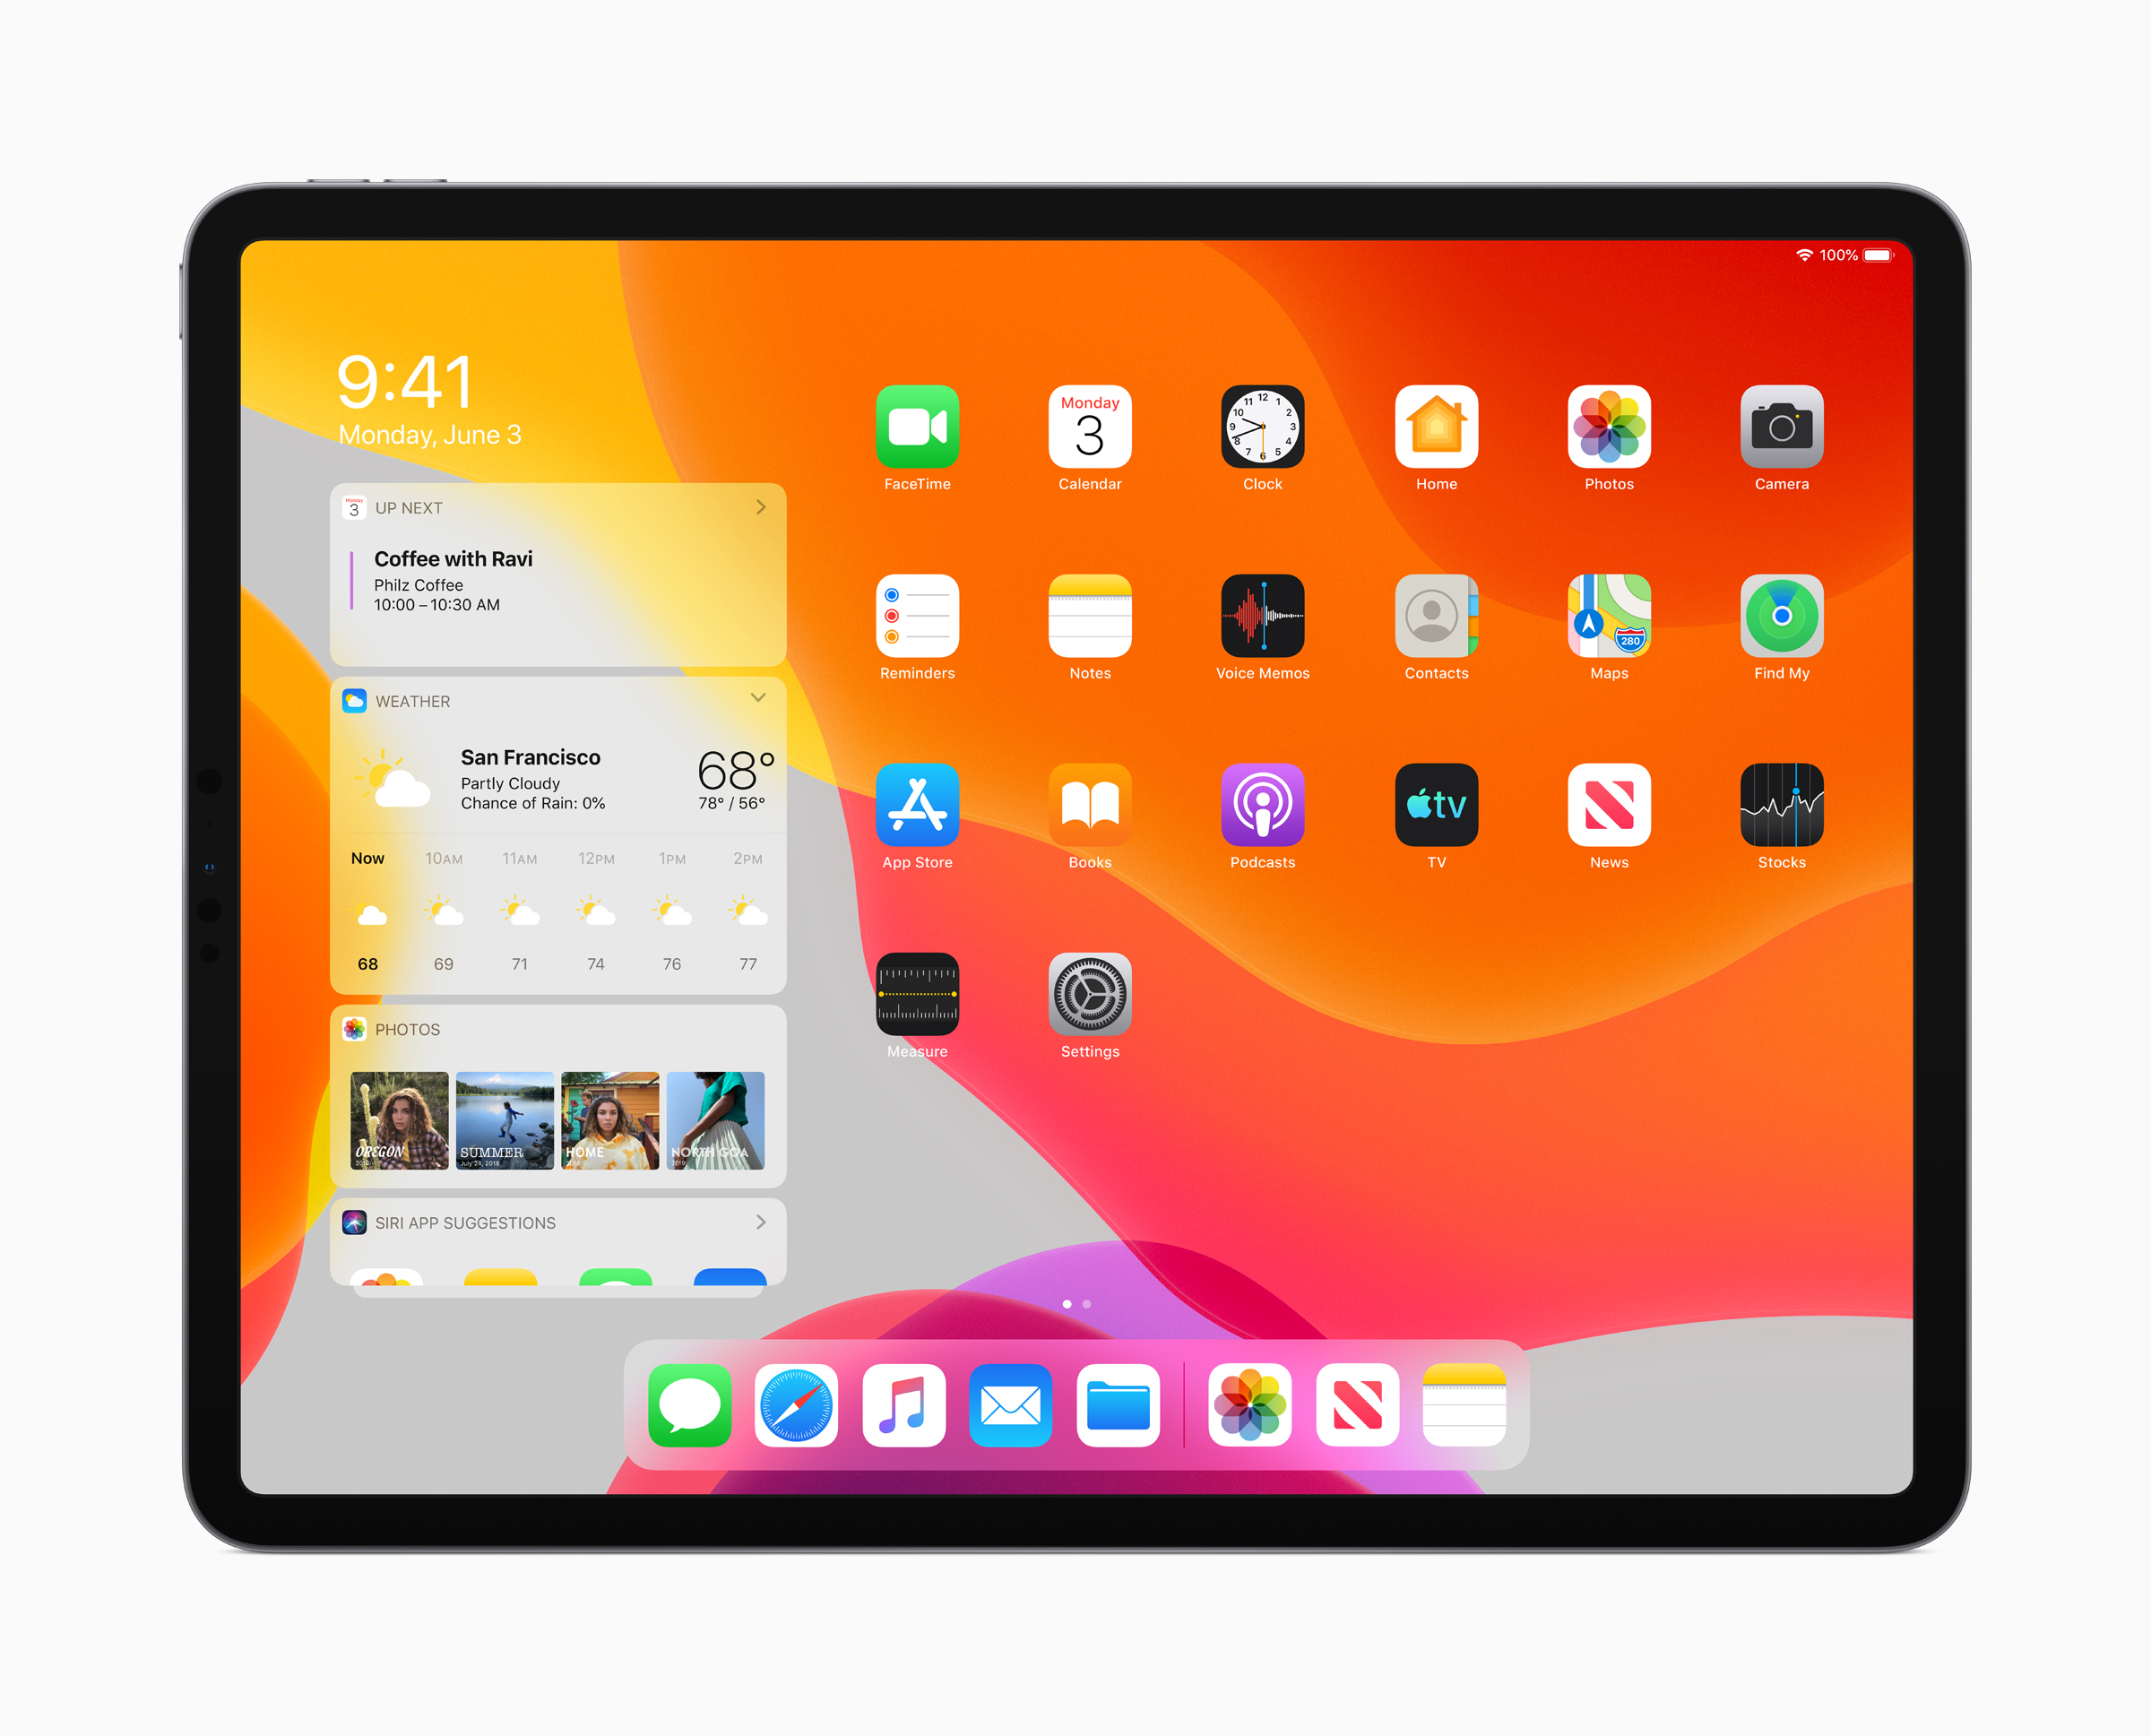 Apple iPadOS for iPad: new home screen, multitasking